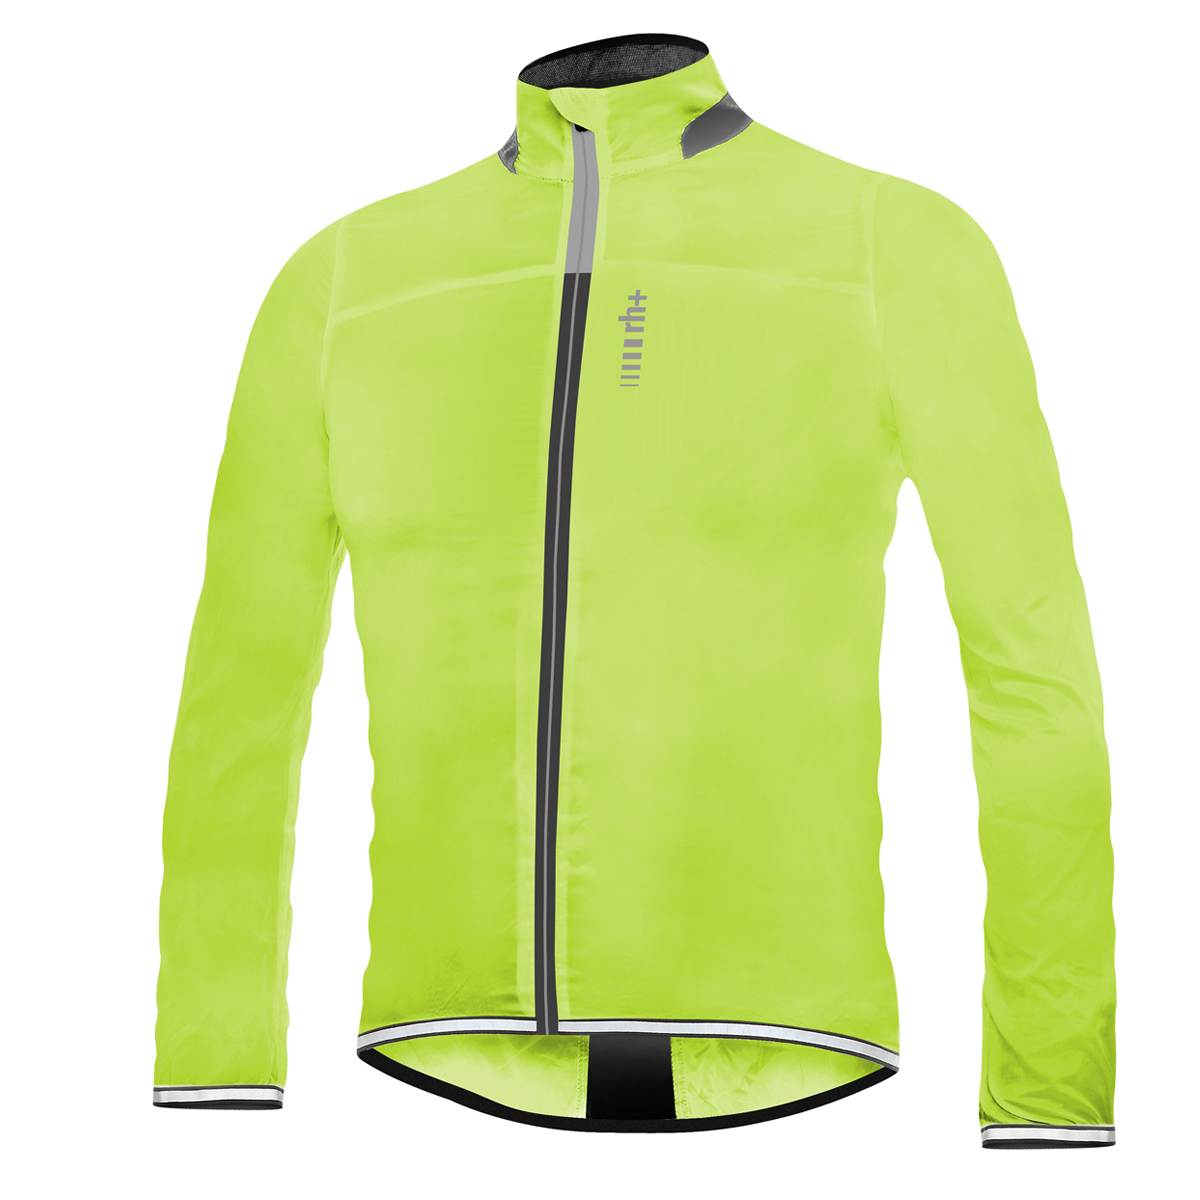 RH+ Acquaria Pocket Jacket spring green SSCU023-225